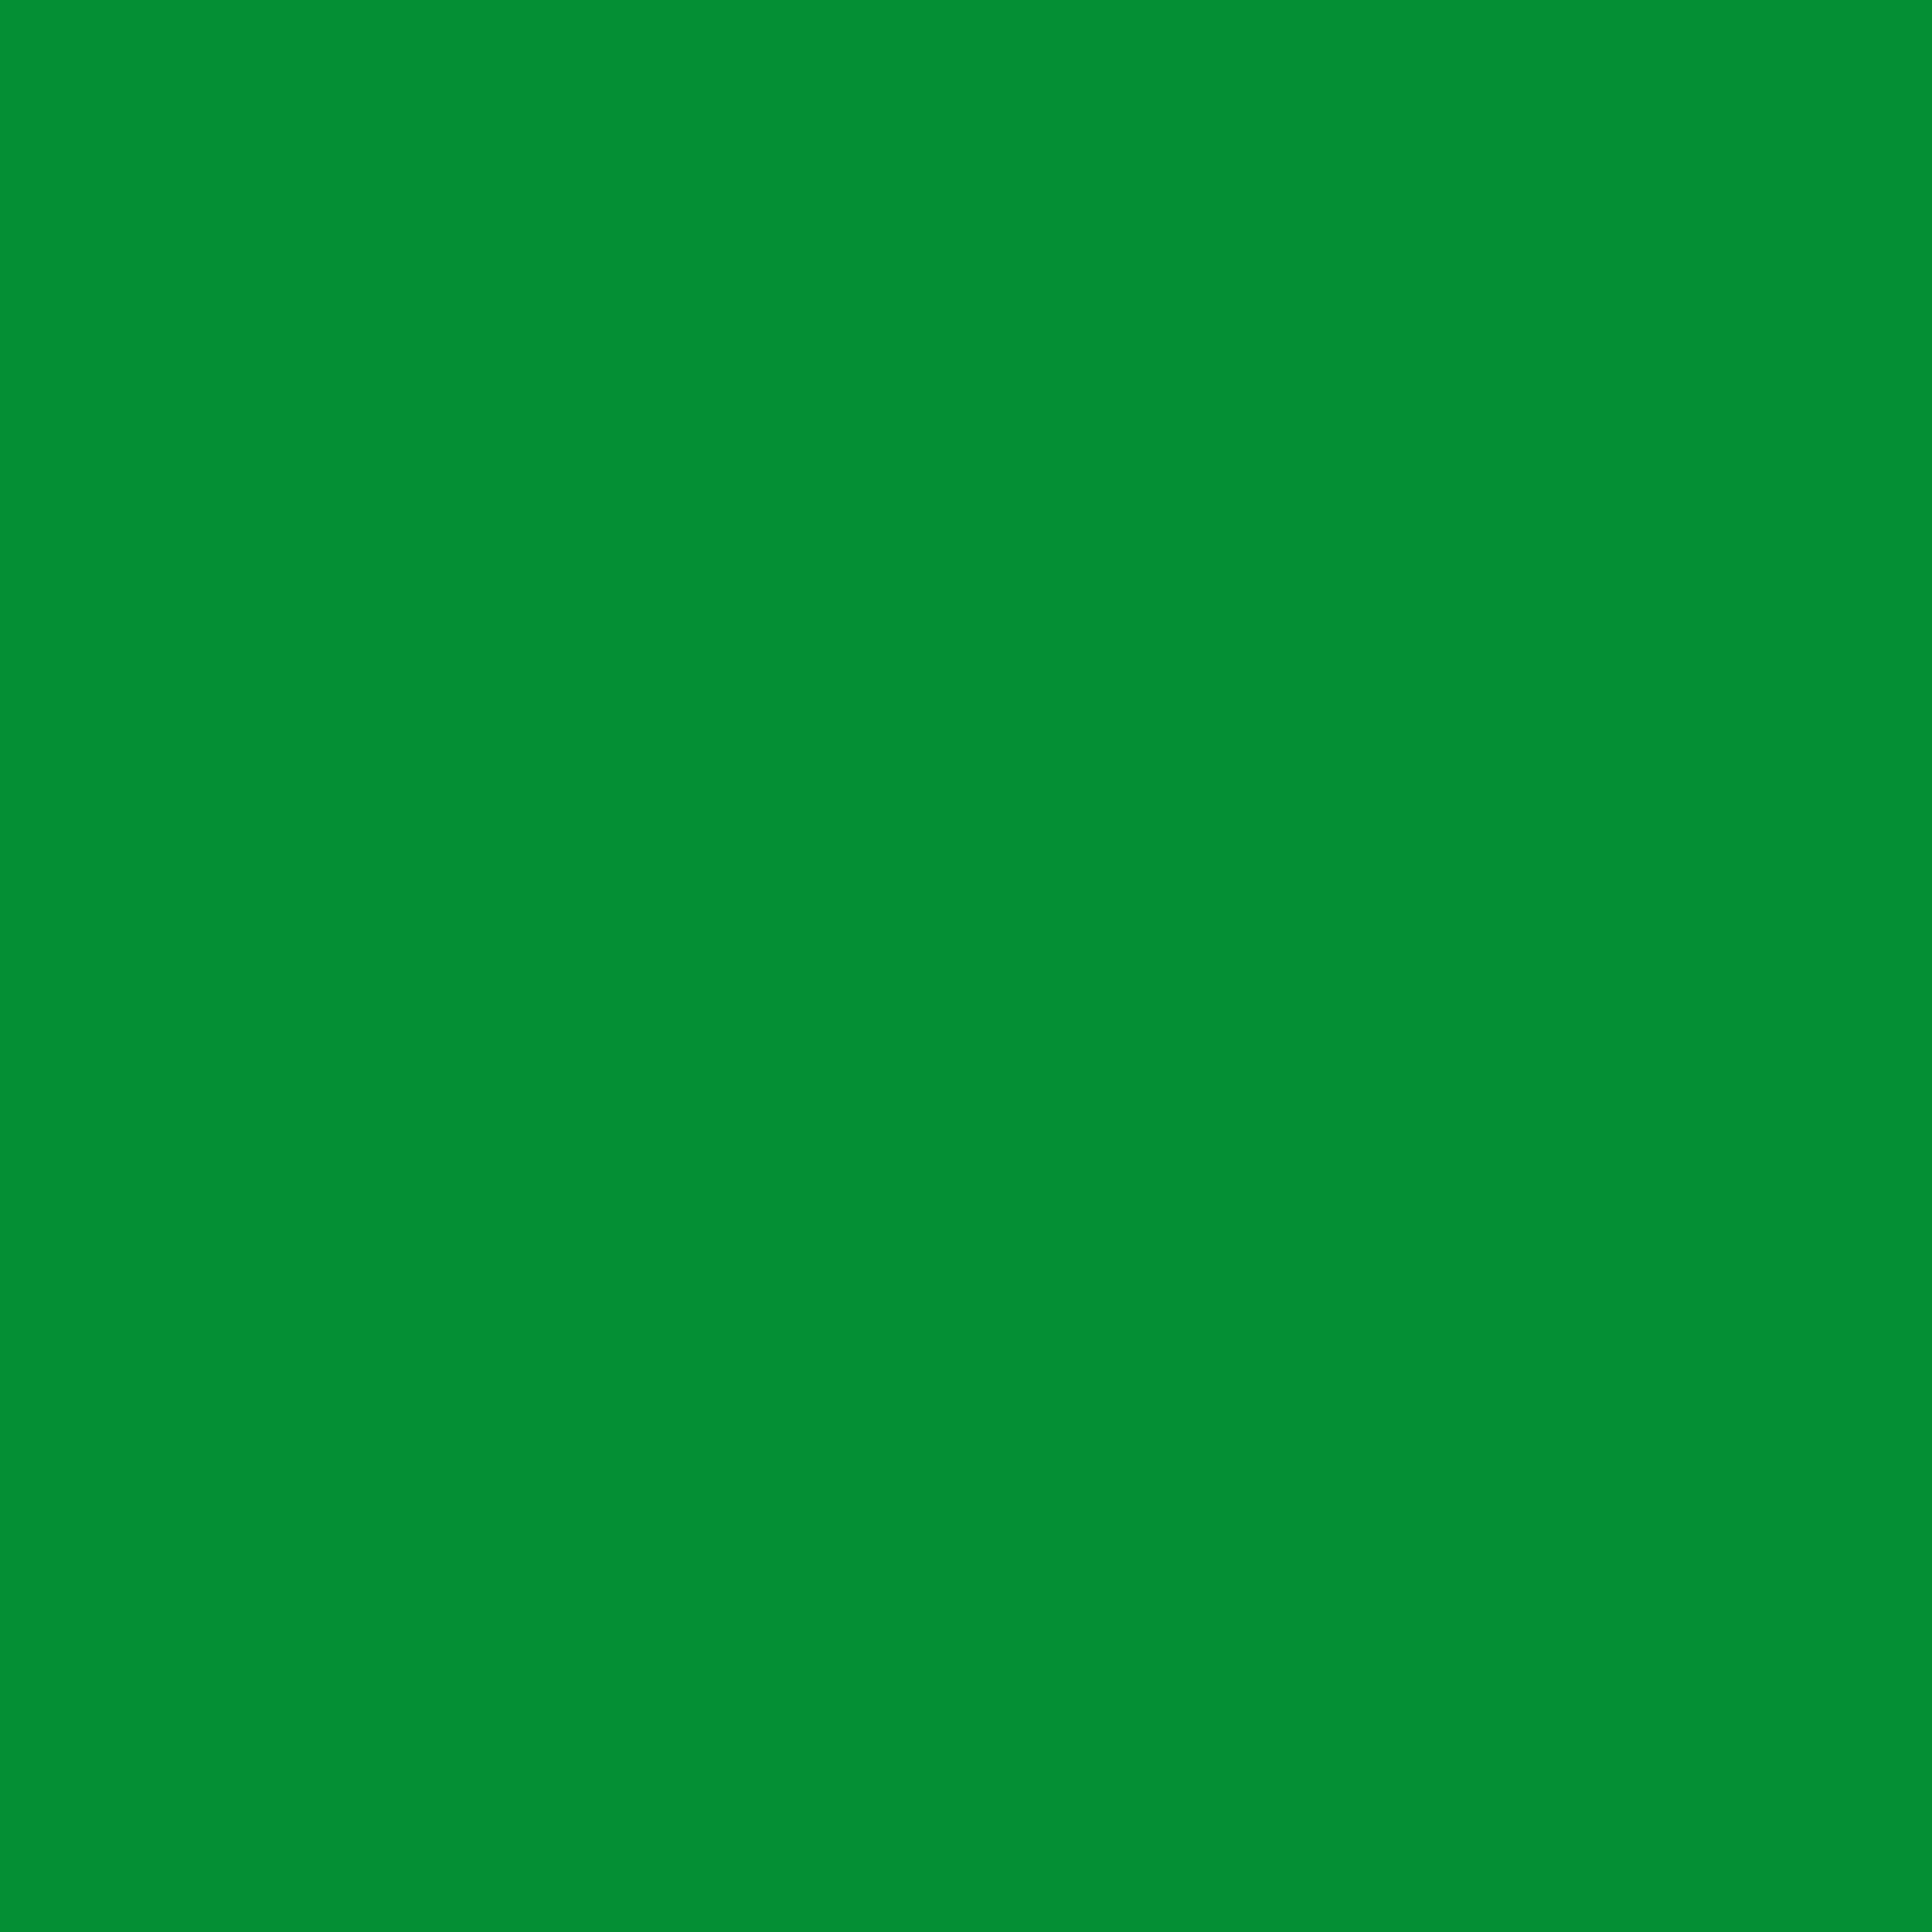 2048x2048 North Texas Green Solid Color Background